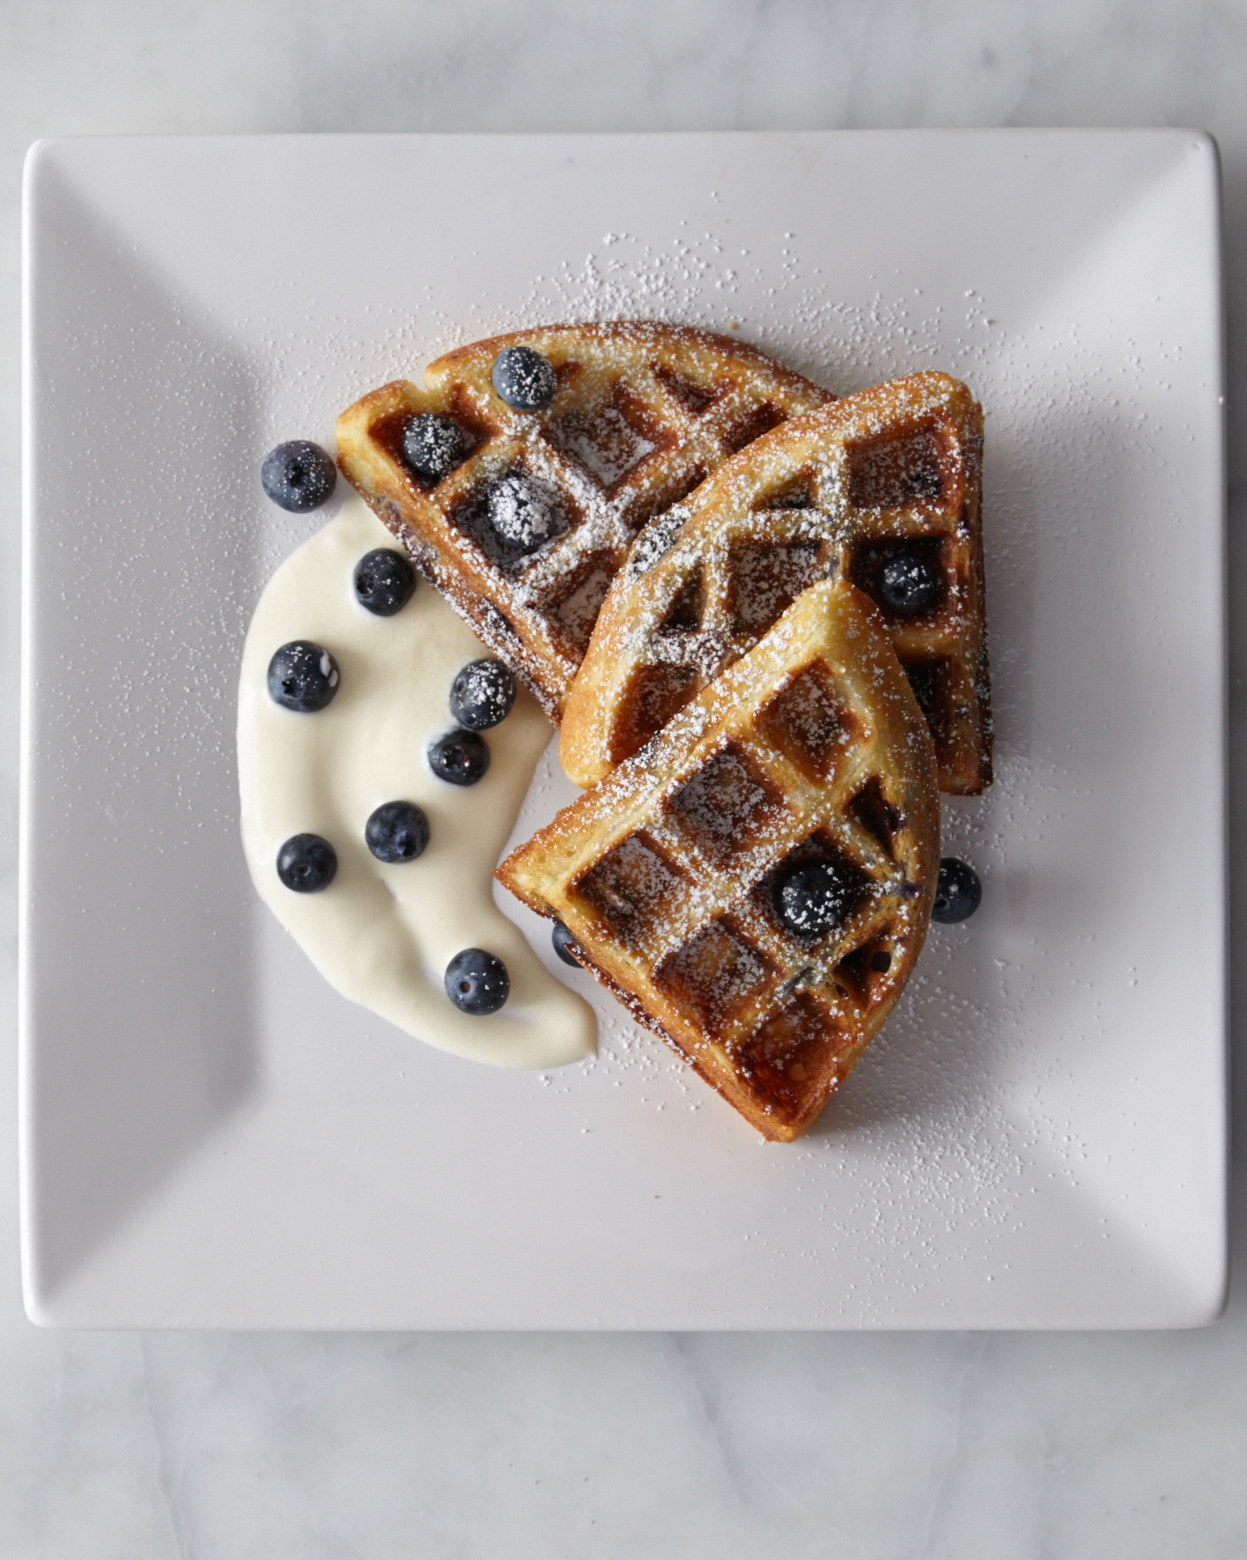 blue-berry-waffles-0511-d112420.jpg